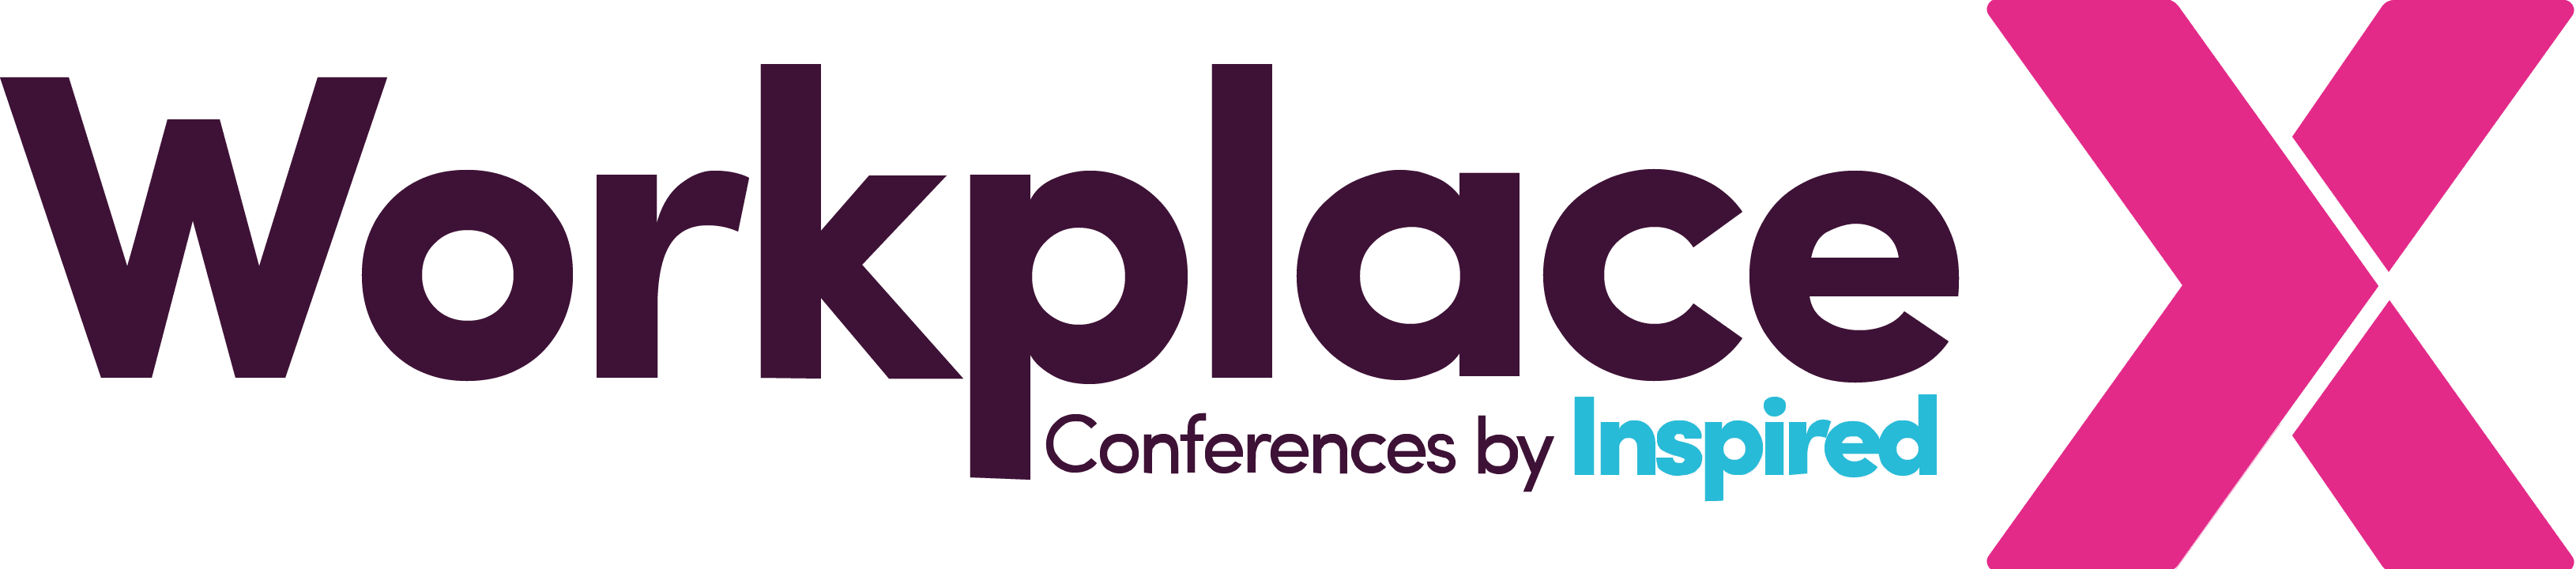 Workplace X Conference Logo